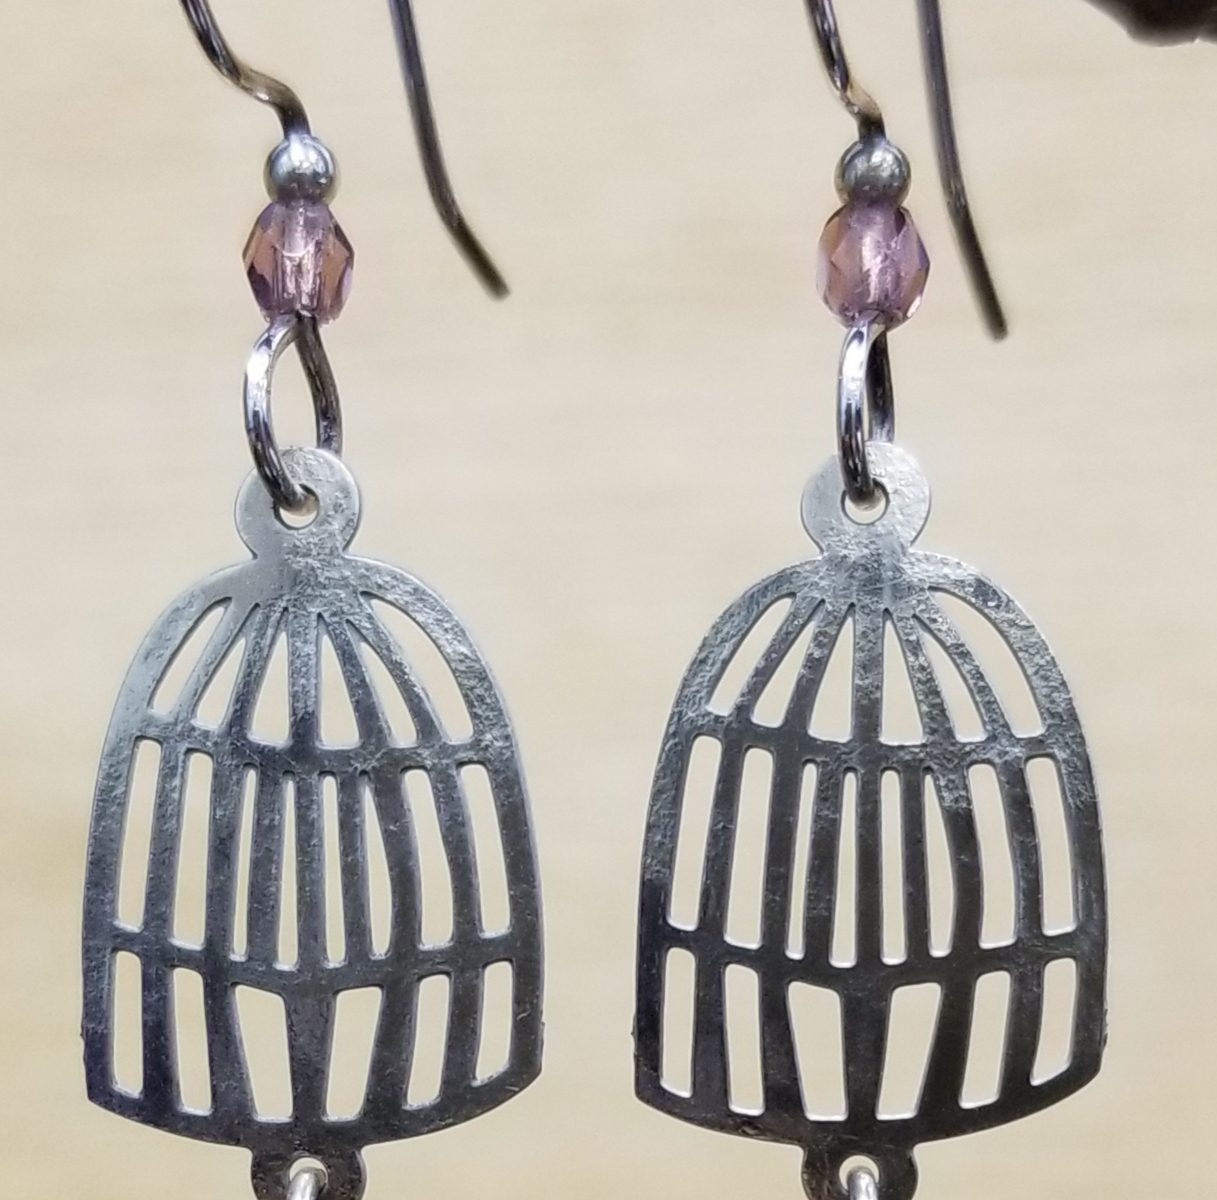 Bird and birdcage earrings with violet bead